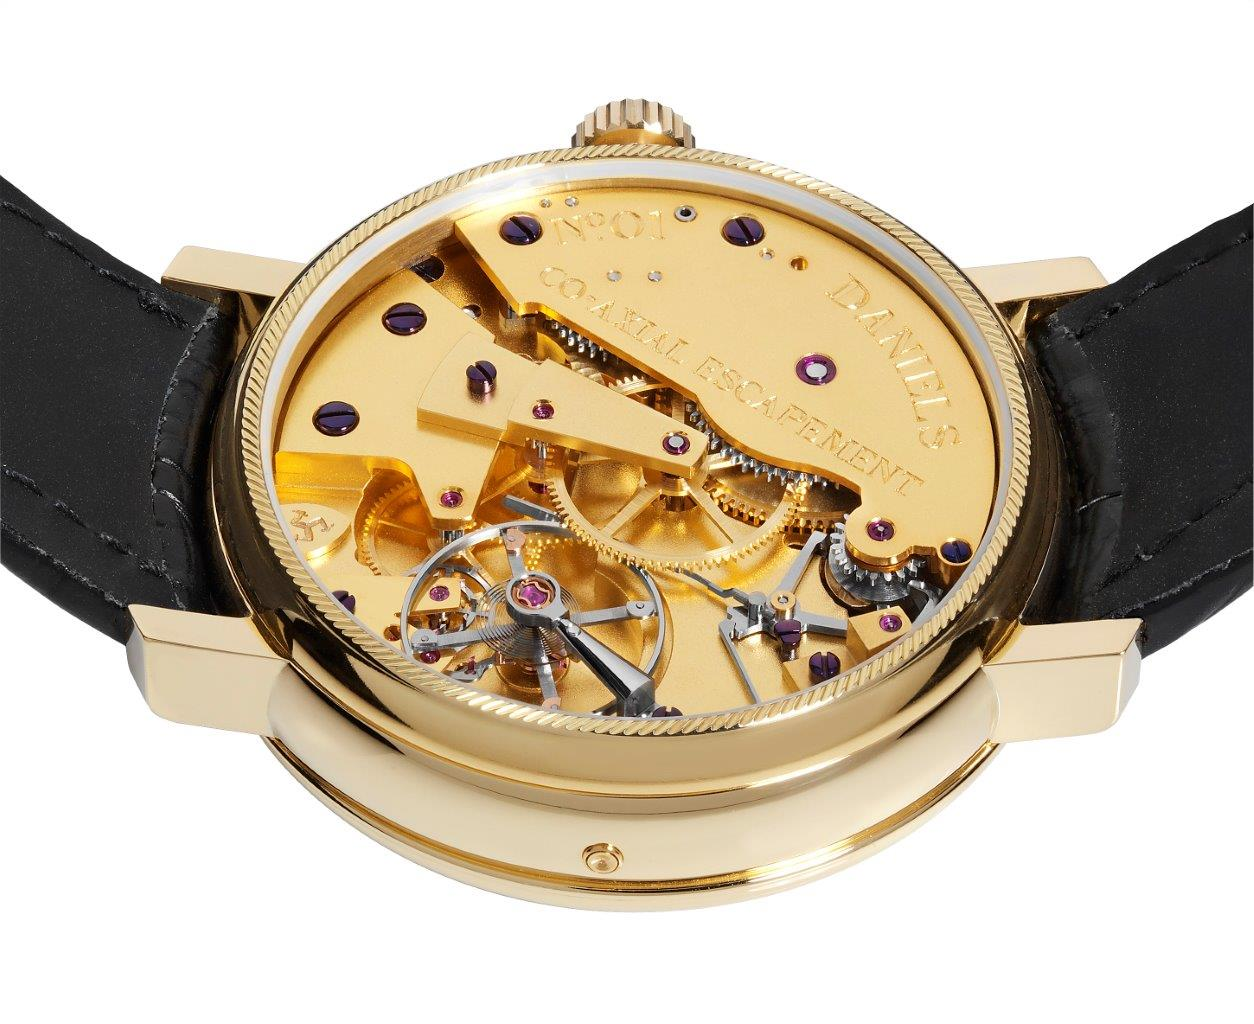 Daniels Anniversary watch movement made by Roger Smith for A Collected Man London